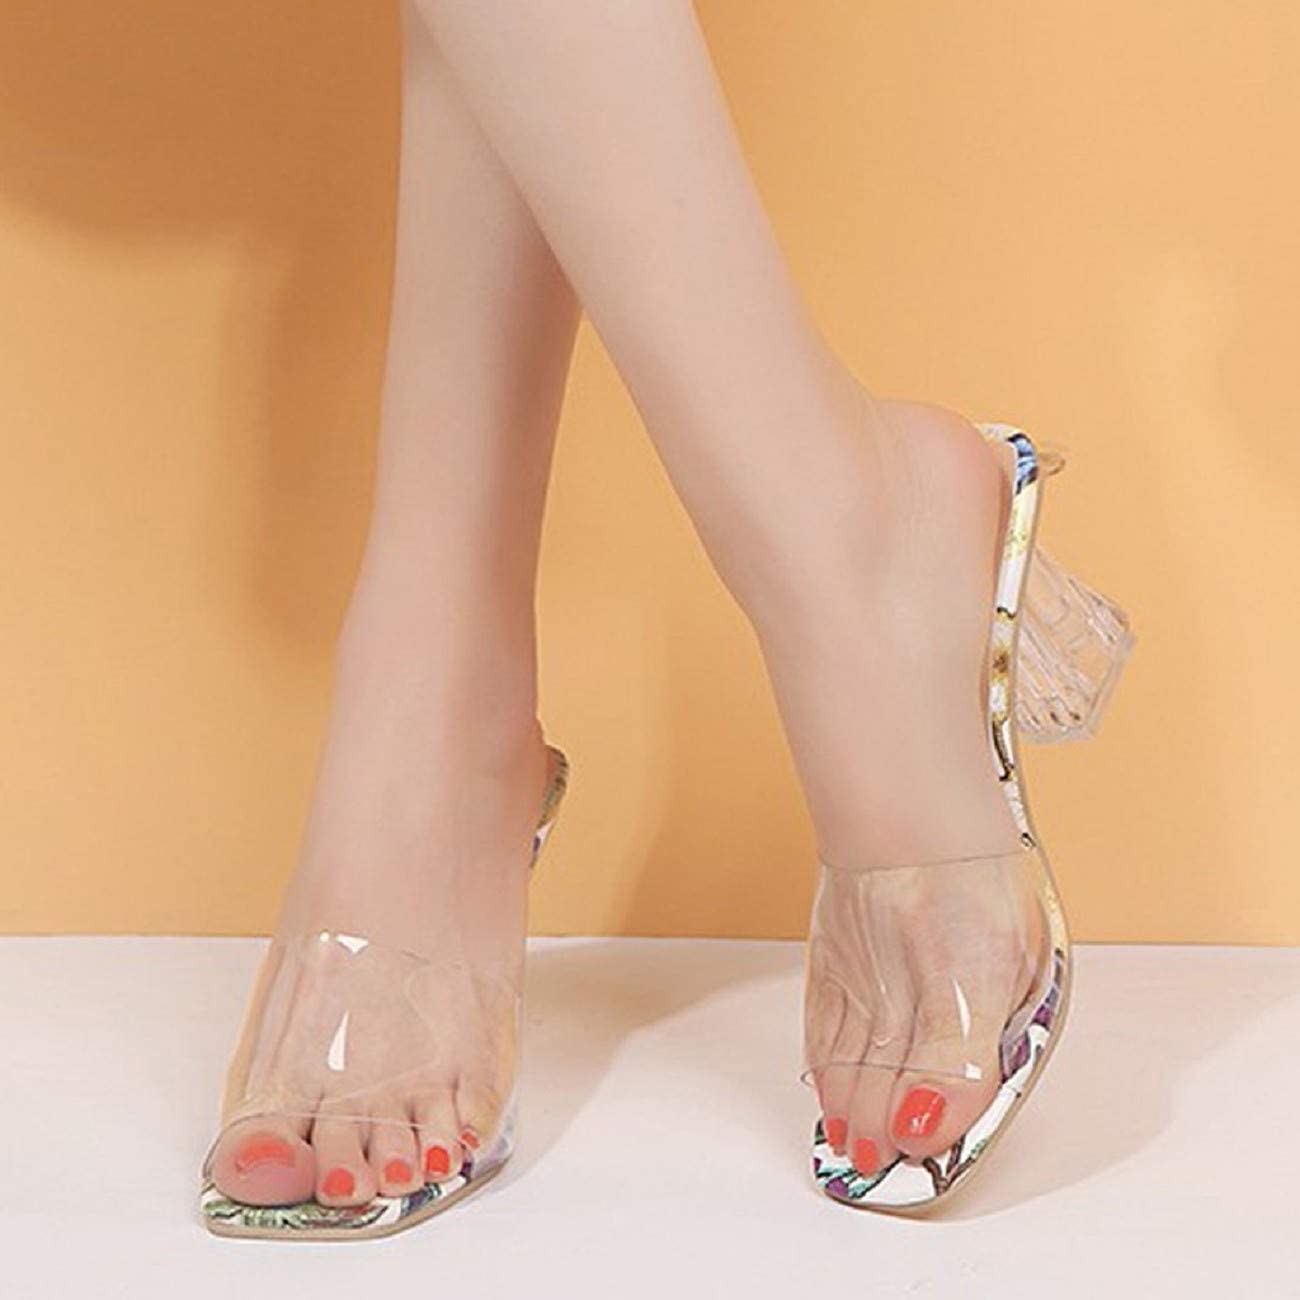 Tsmile Womens Floral Print Sandals Fashion See Through White Summer Open Toe Shoes Casual High-Heeled Slipper